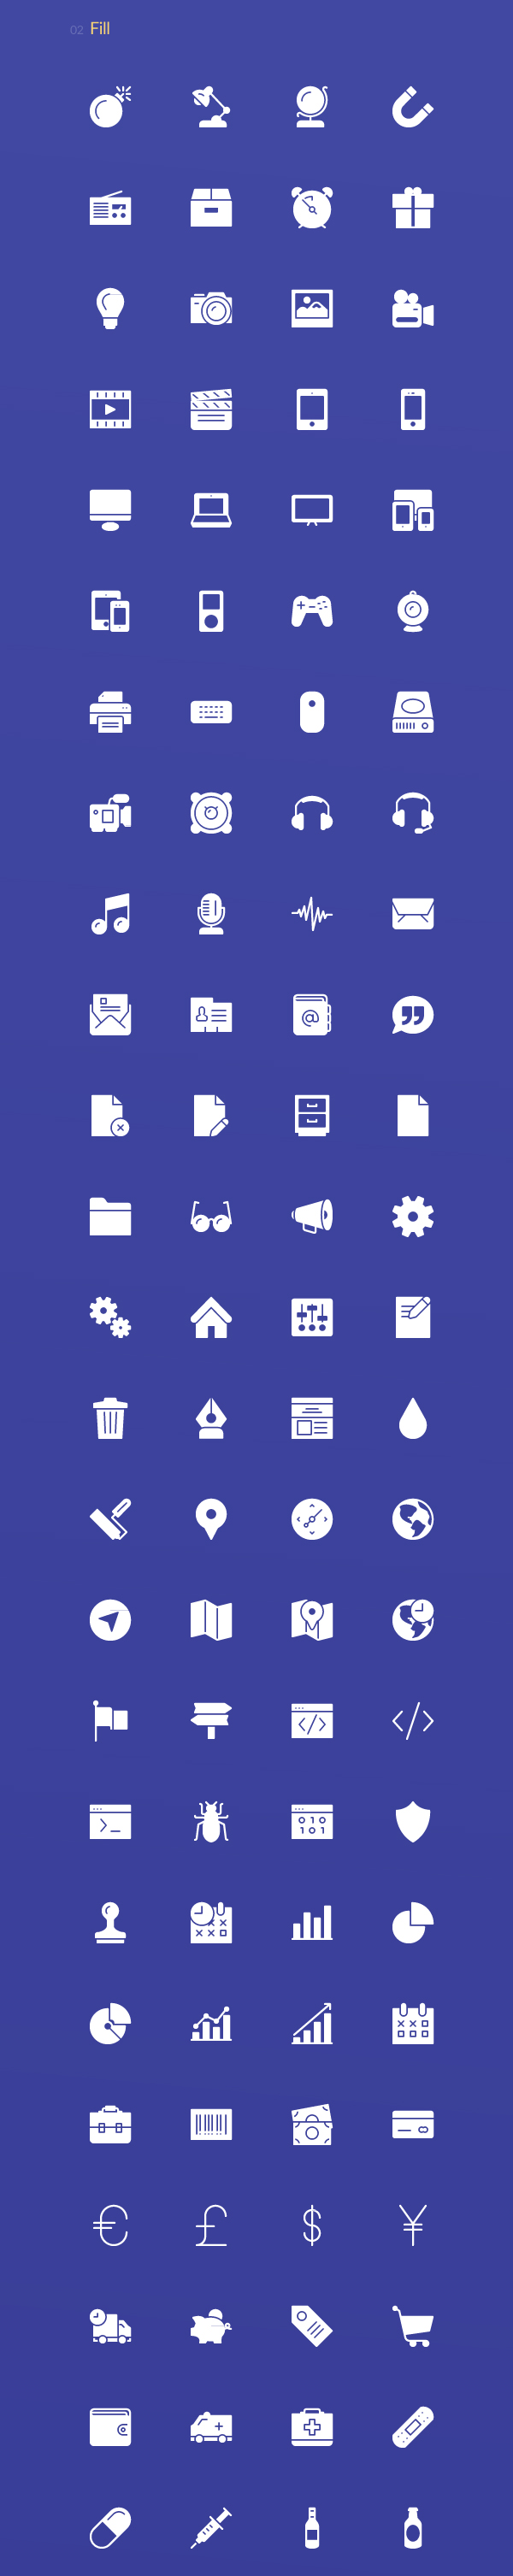 Webicons – Stroke & Fill Icons (100 Icons)